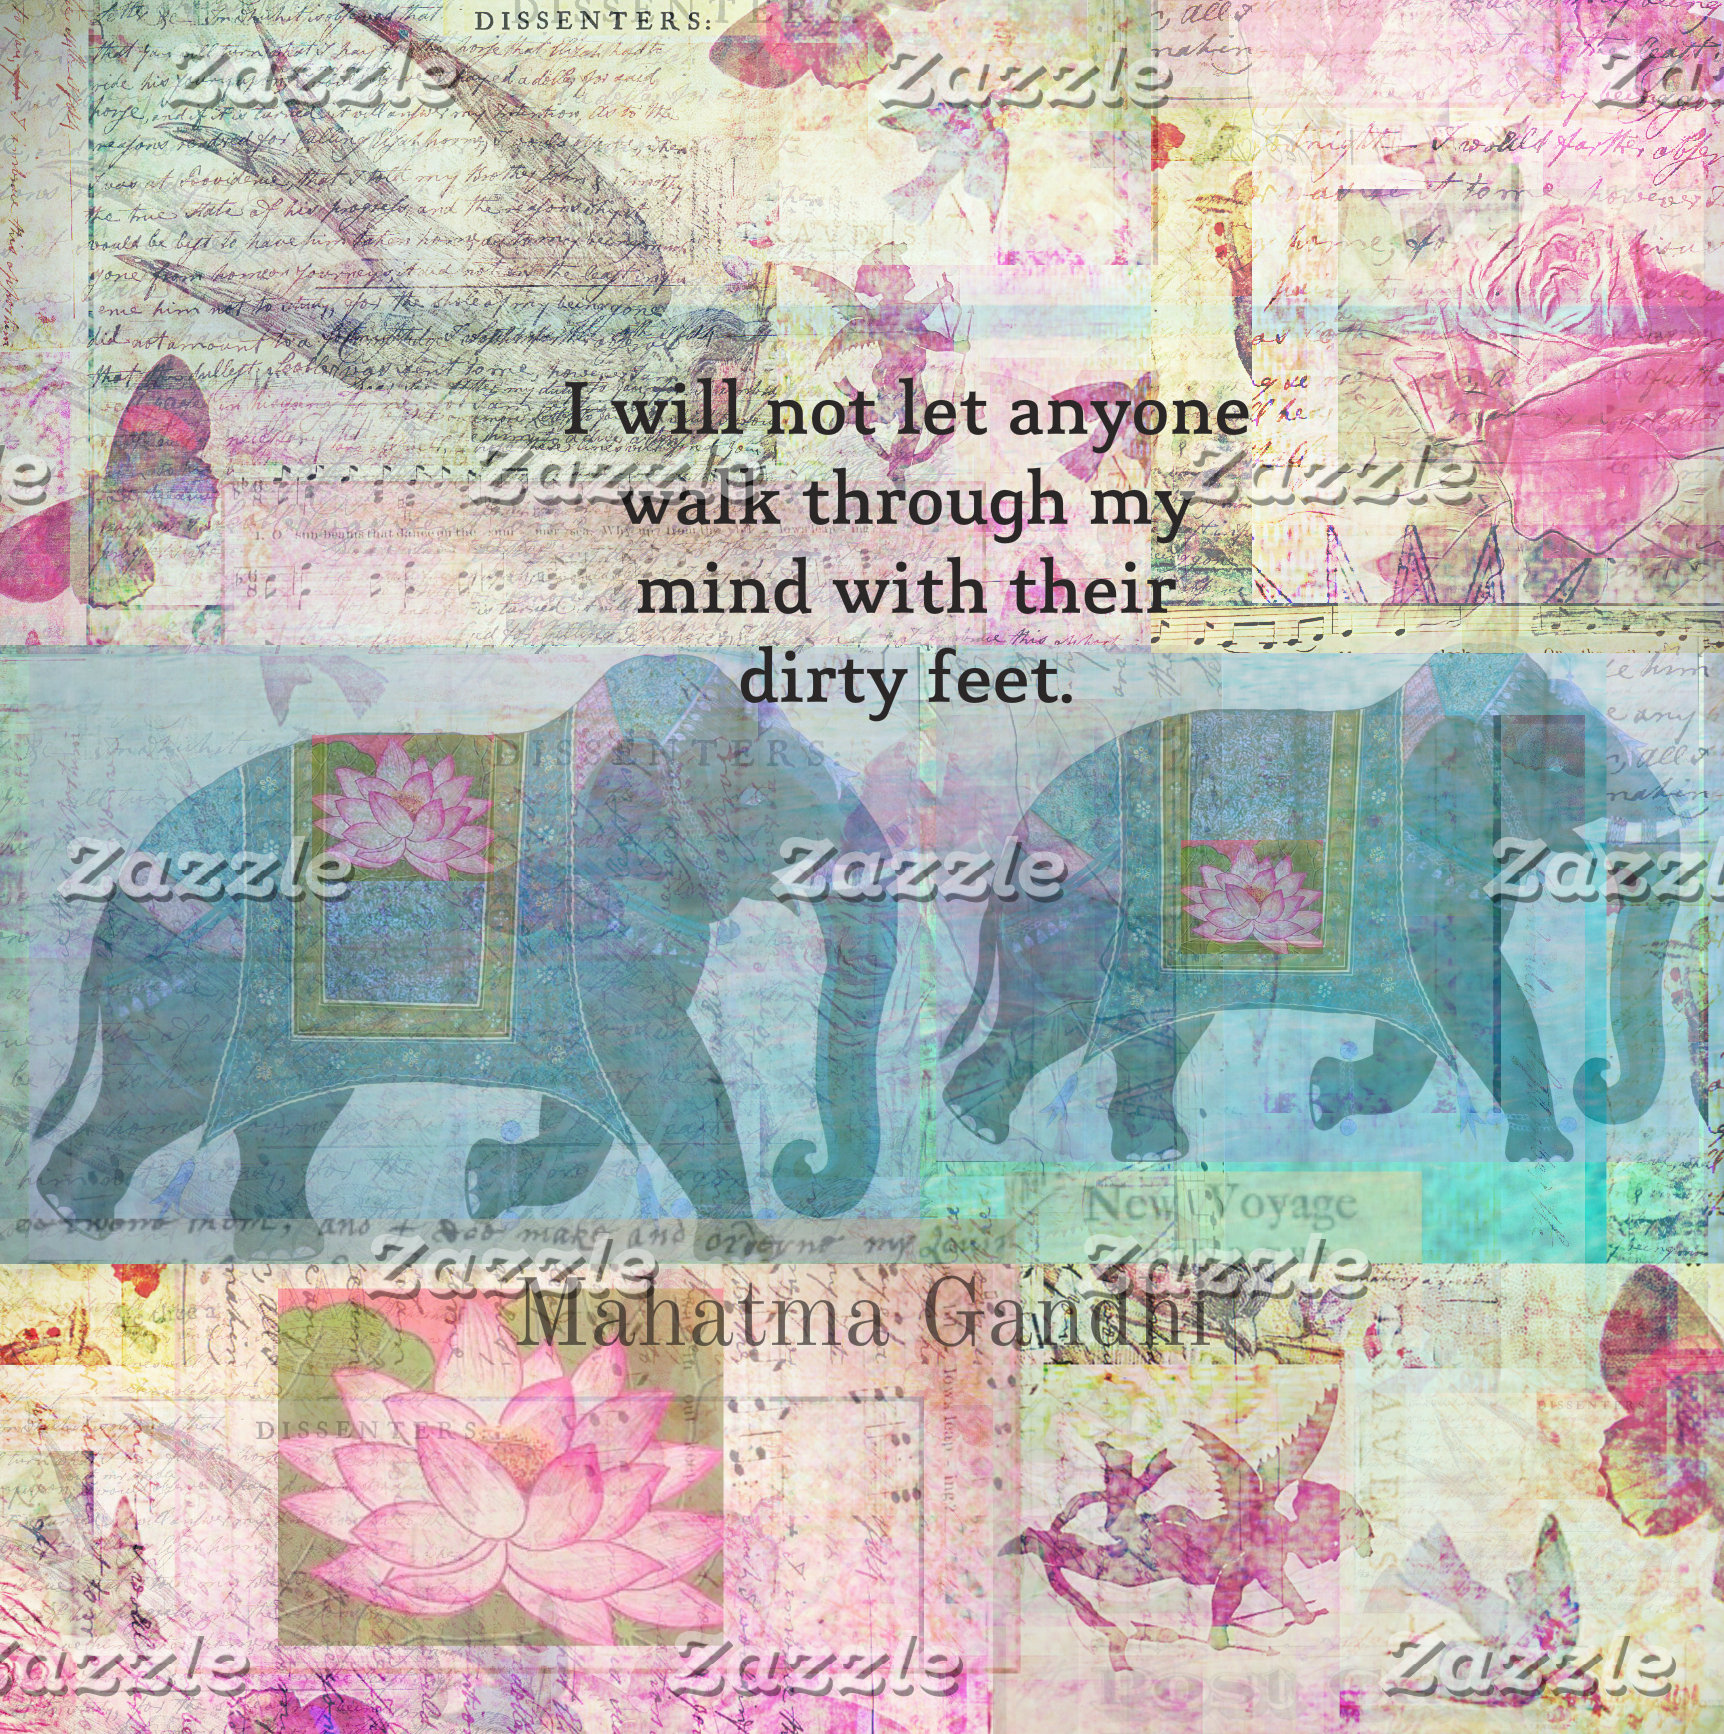 I will not let anyone walk through my mind